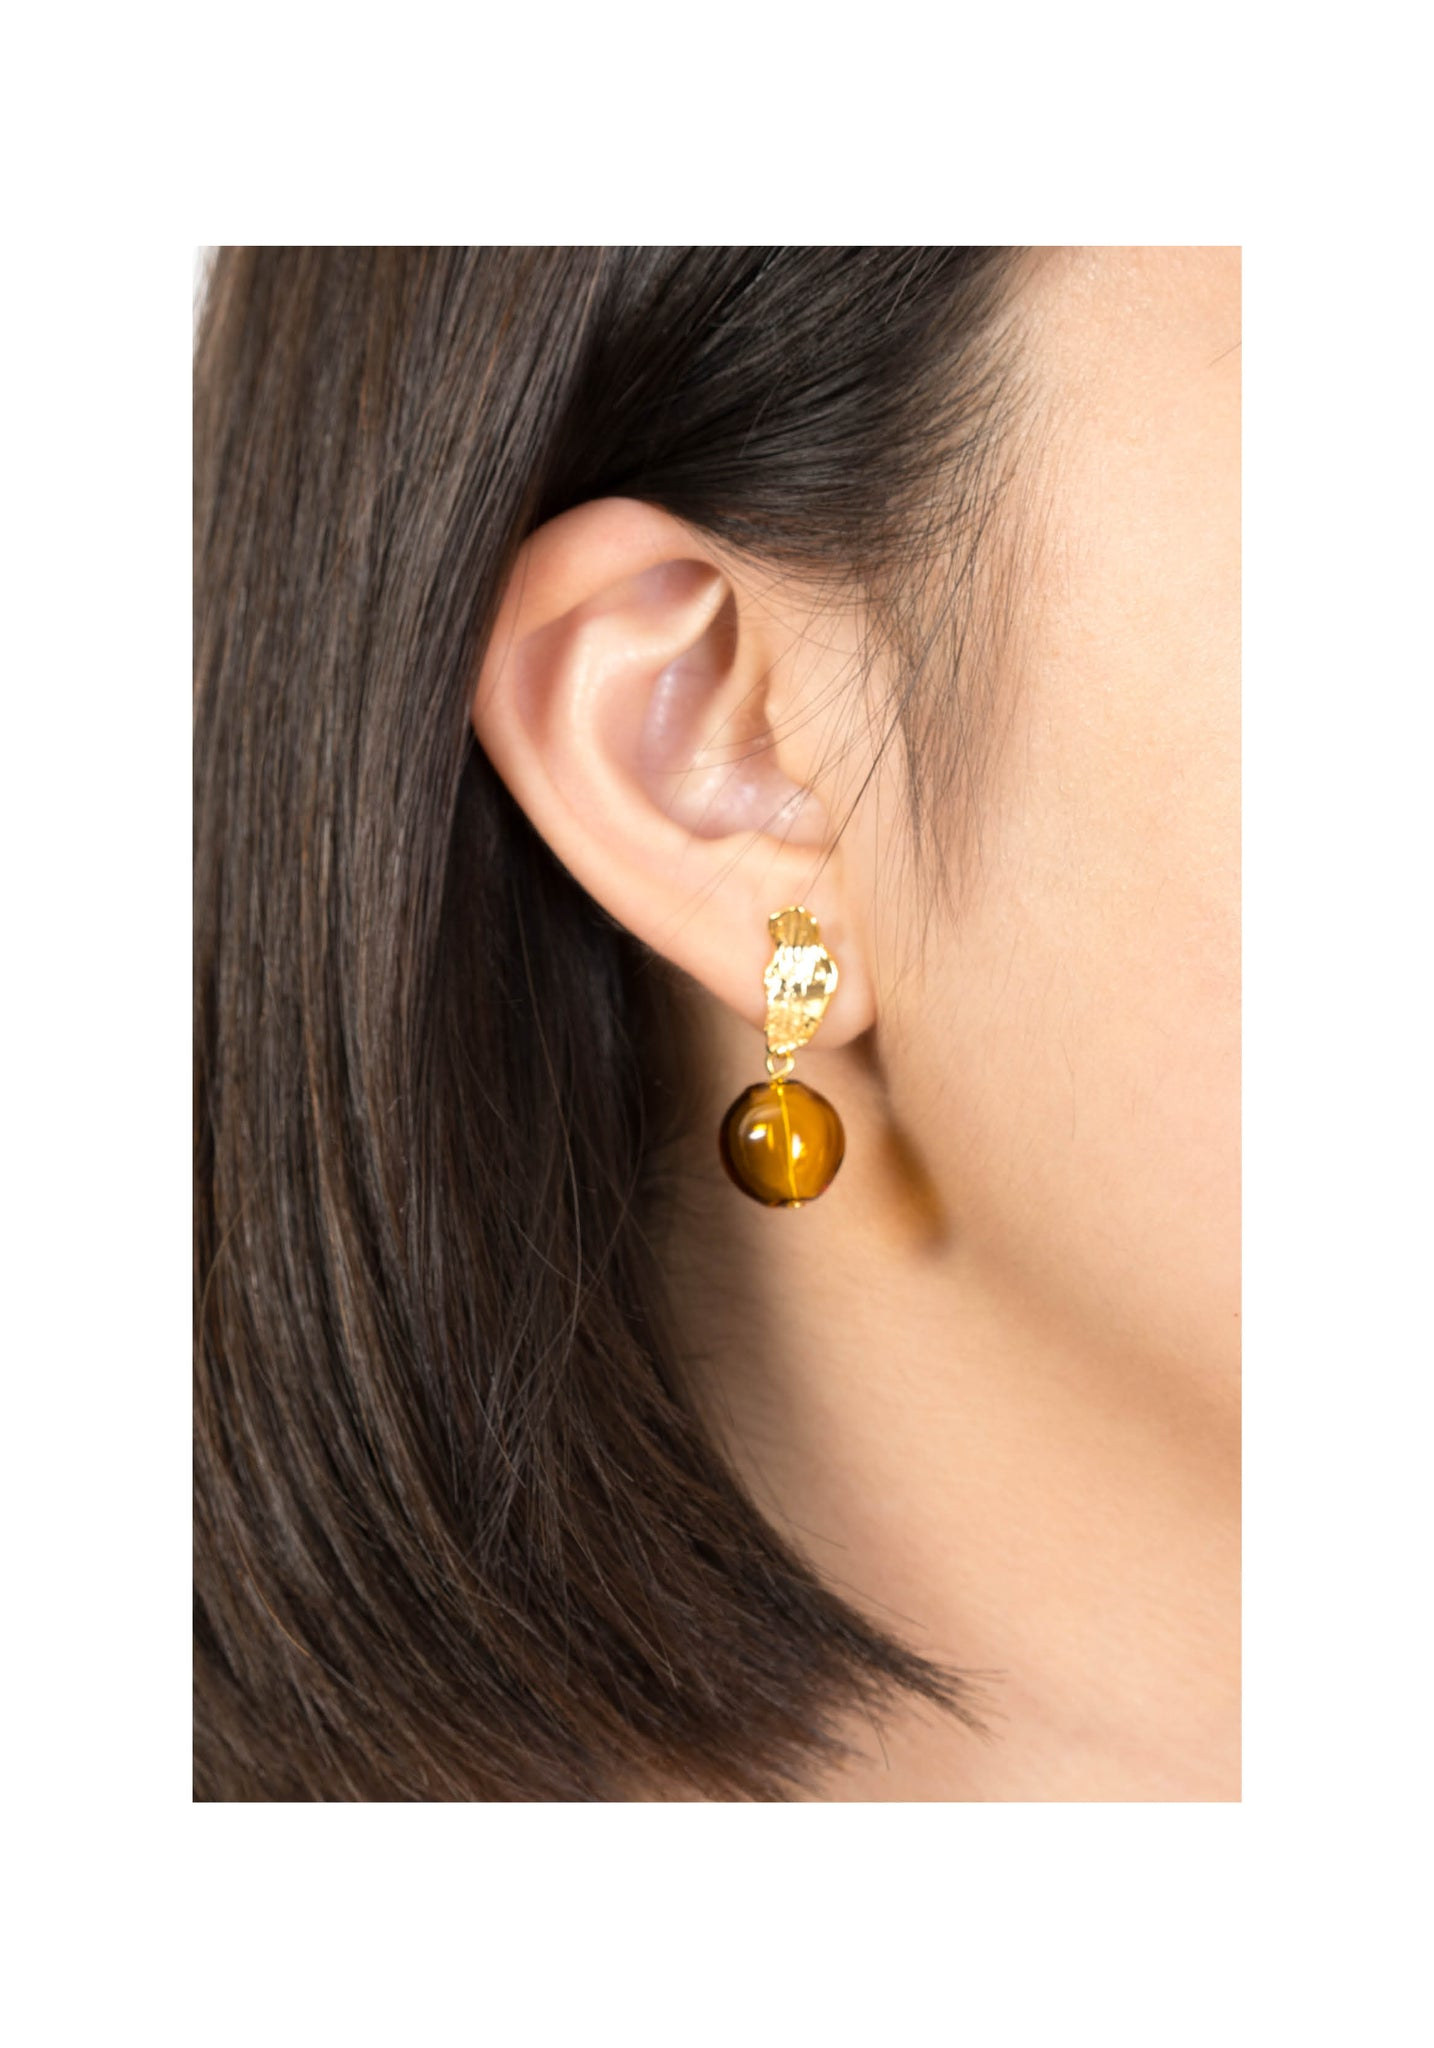 Texture Leaf And Glass Ball Earrings - whoami